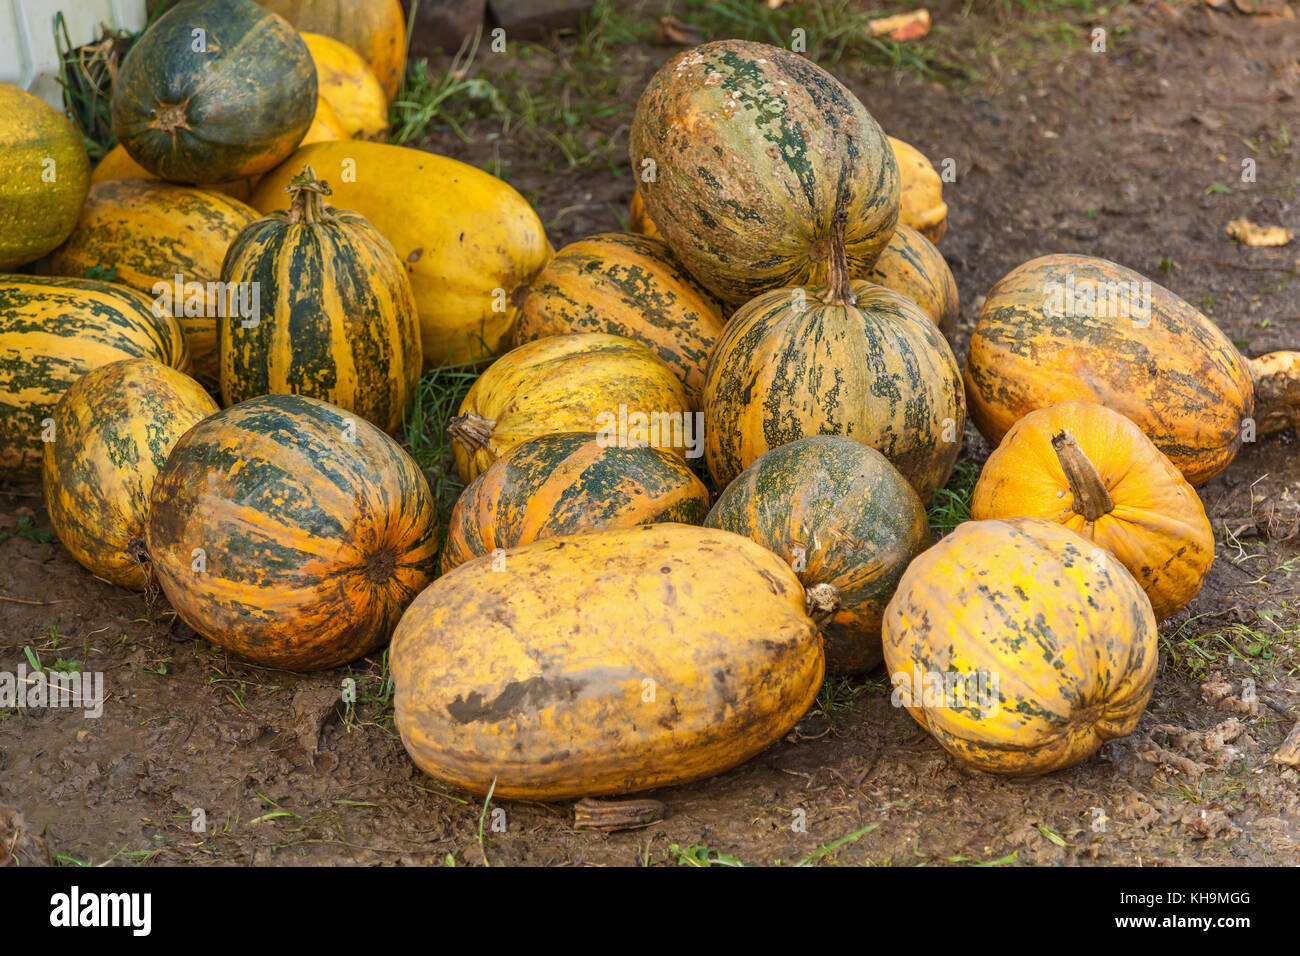 pumpkins stacked on the farm, Many piles of yellow pumpkins on the field Stock Photo